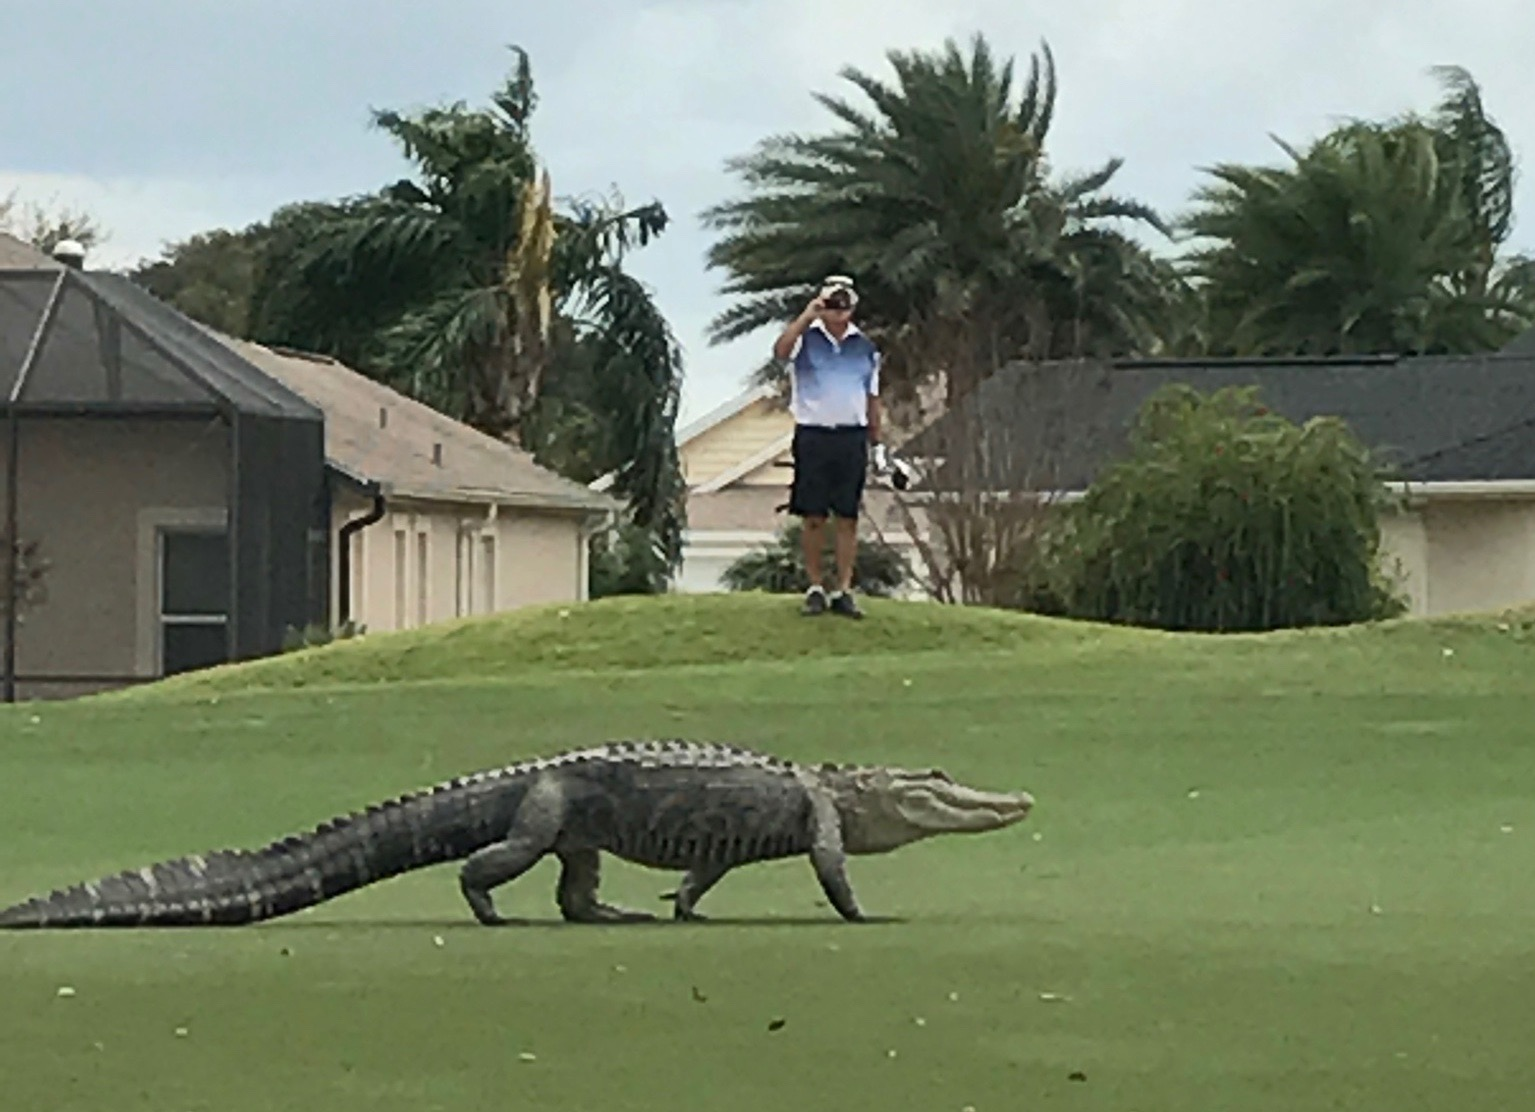 Genial Cliff Jennings Shot This Photo Of An Alligator At Cane Garden Championship  Golf Course.